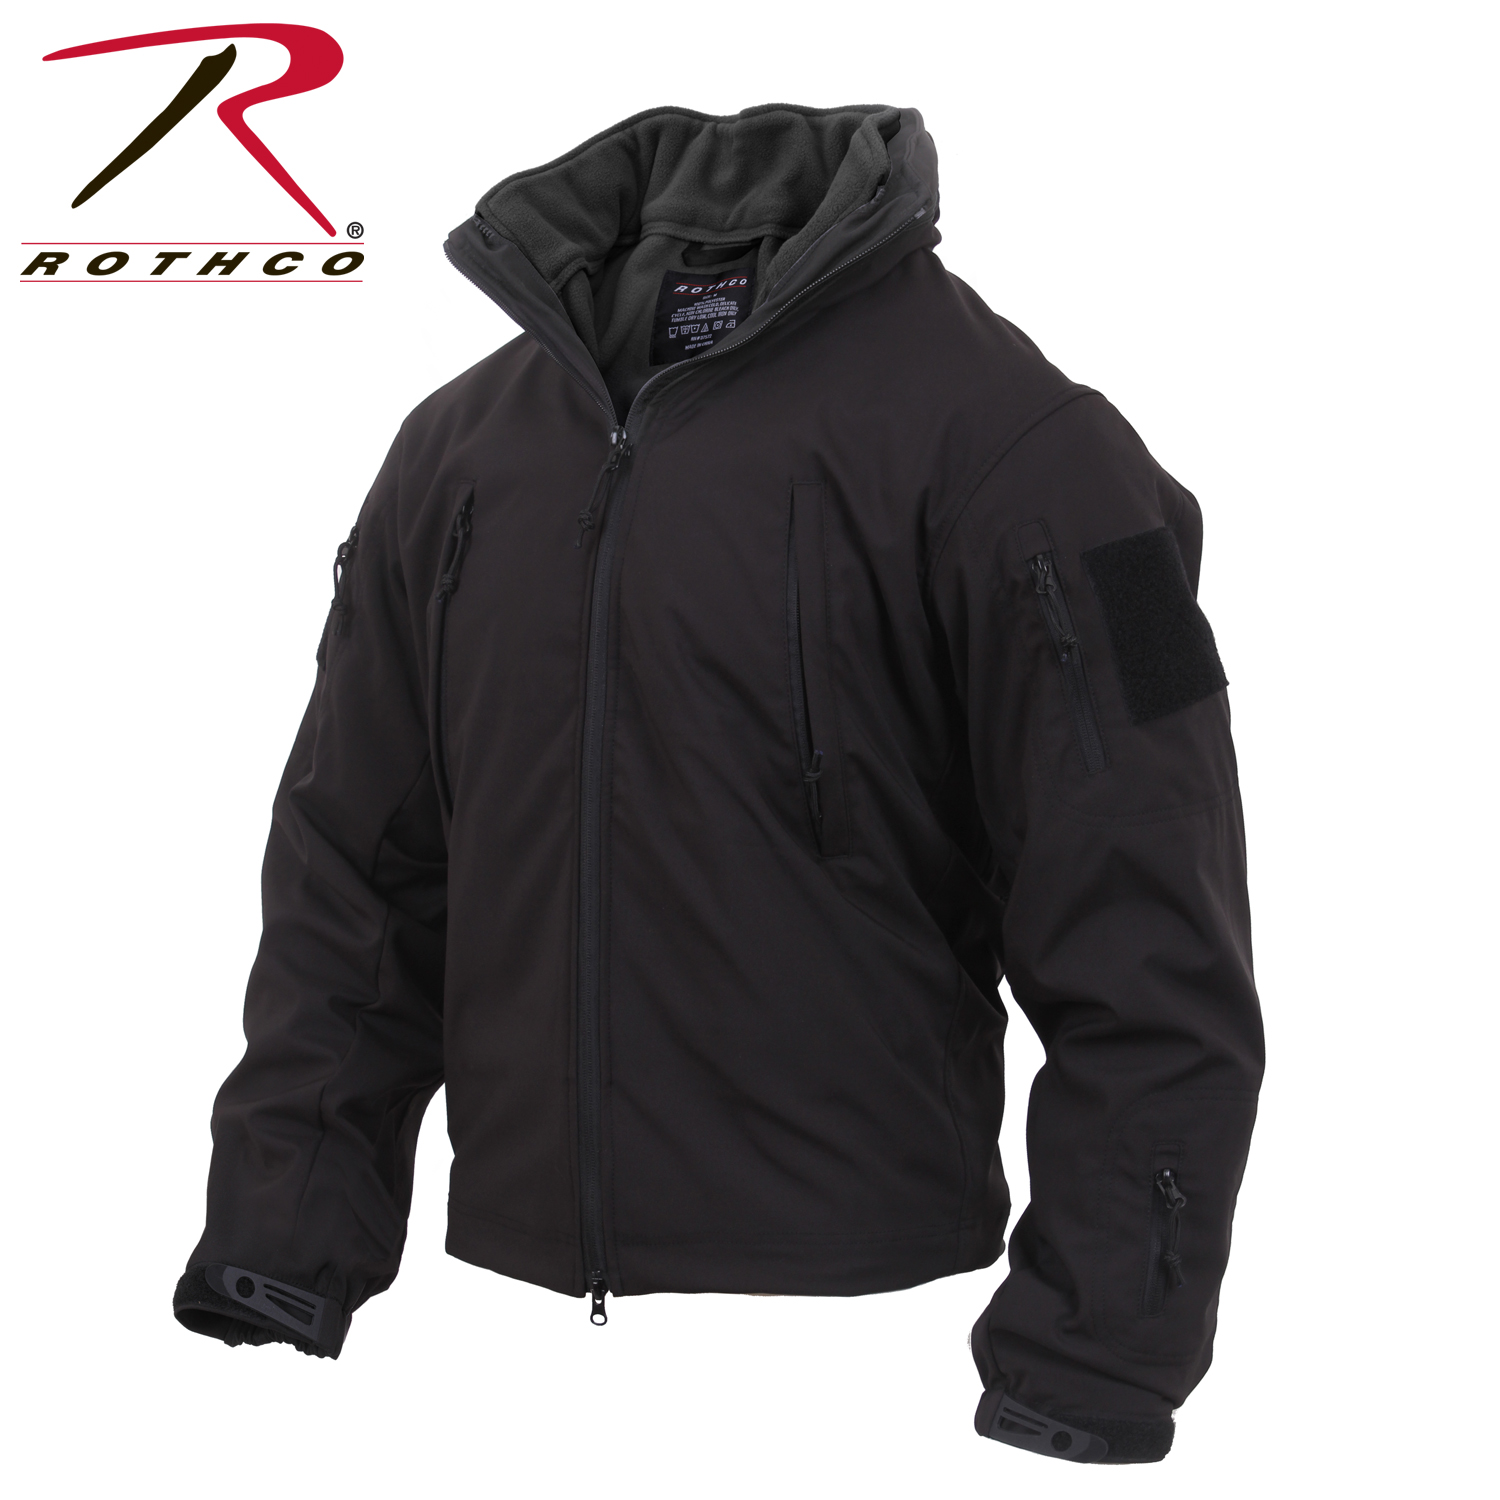 39641cec2cf Rothco Special Ops Tactical Soft Shell Jacket